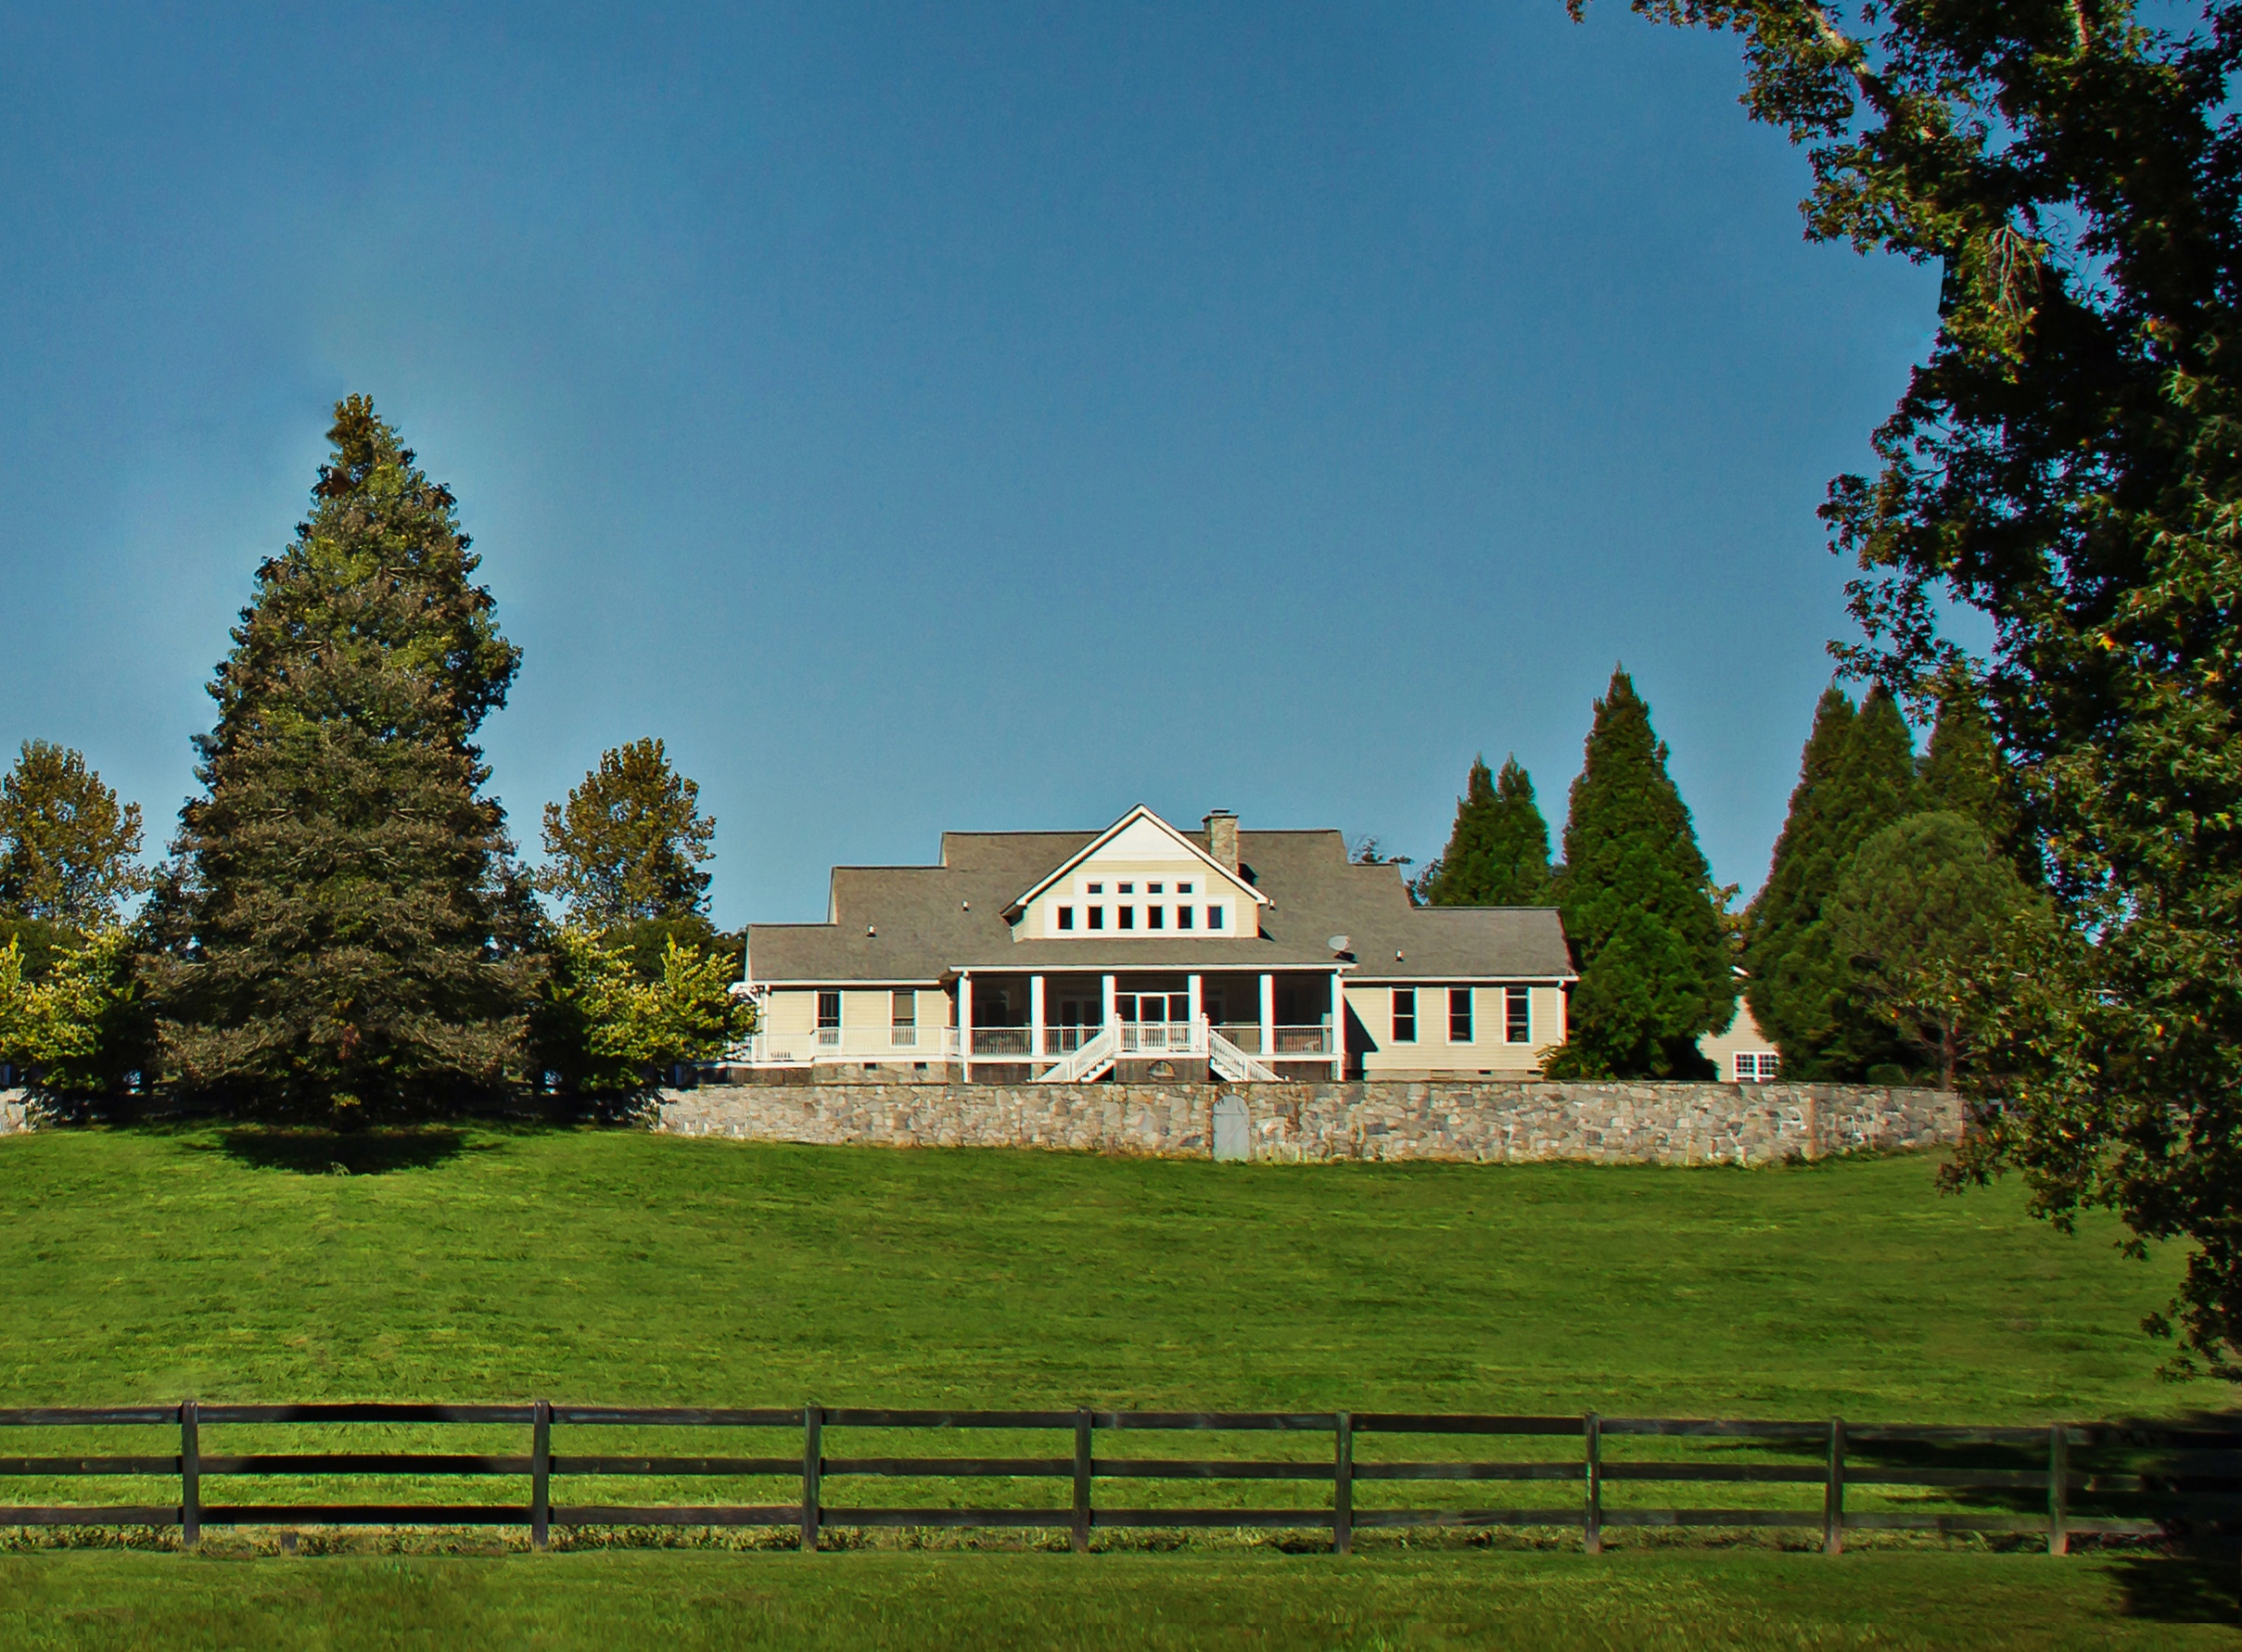 Online Auction For Picturesque Equestrian Farm In South